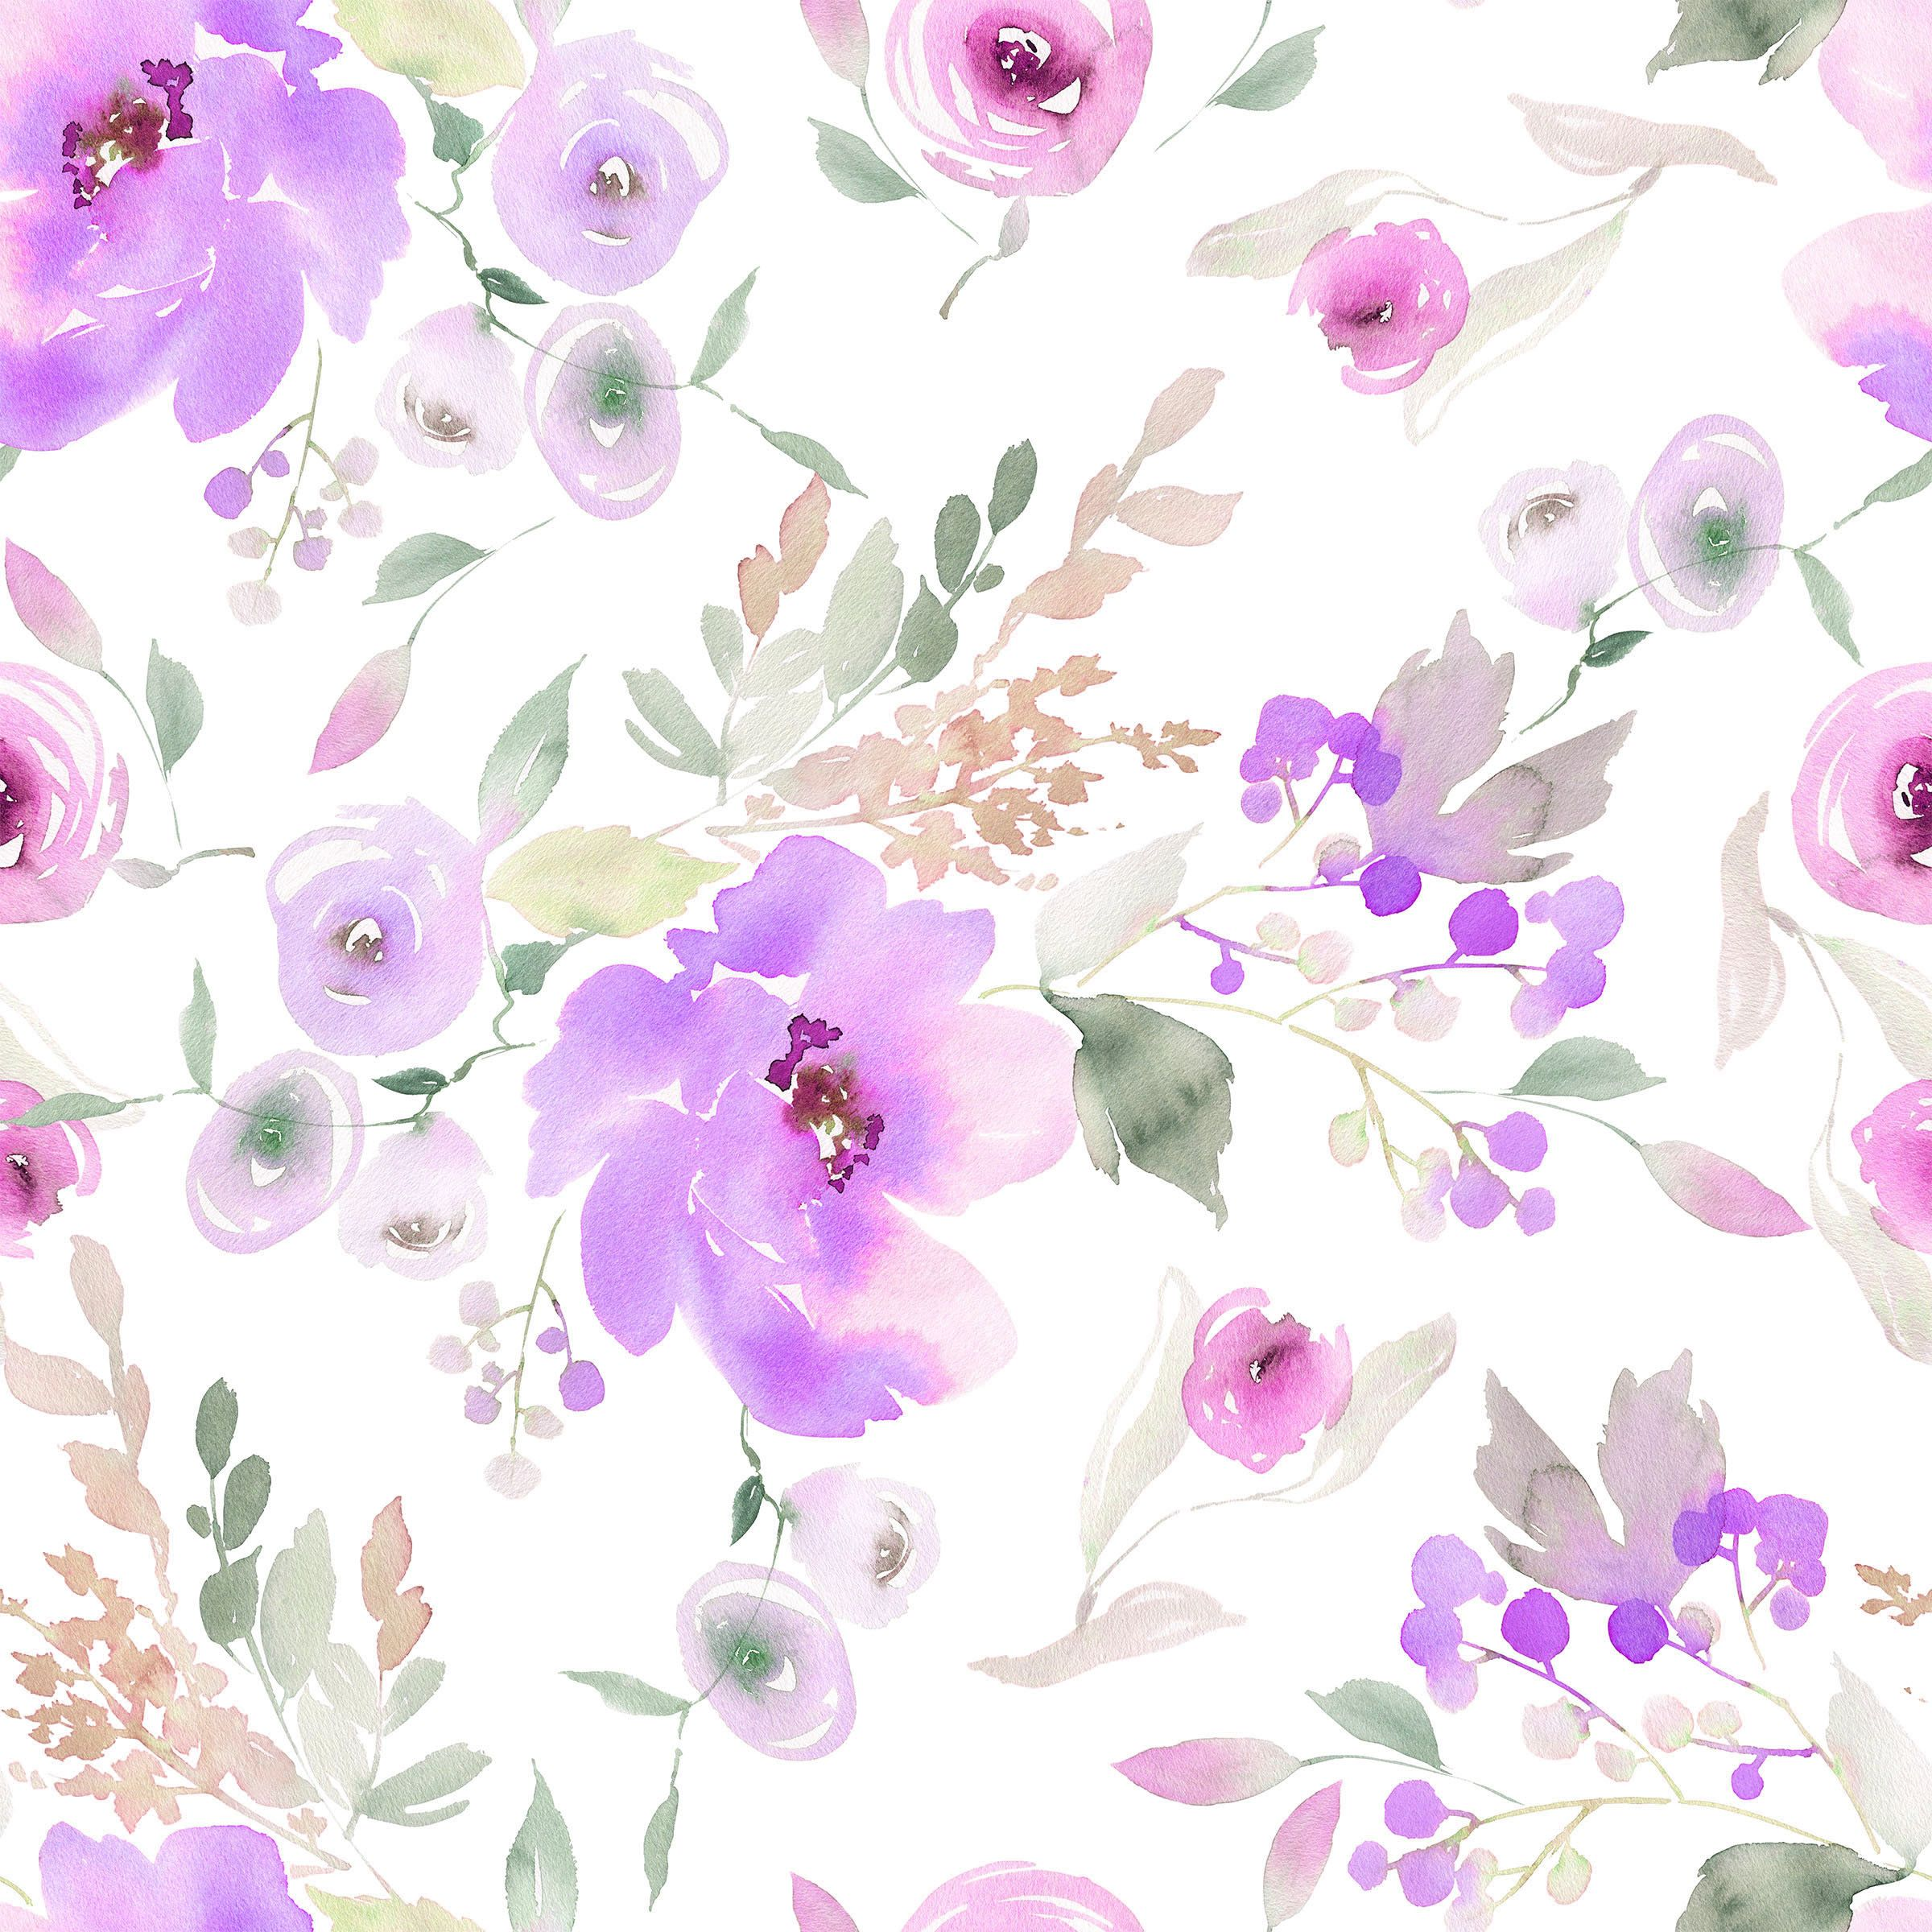 Lavender Floral Fabric By The Yard Quilt Cotton Knit Etsy Lavender Floral Fabric Watercolor Flowers Floral Fabric